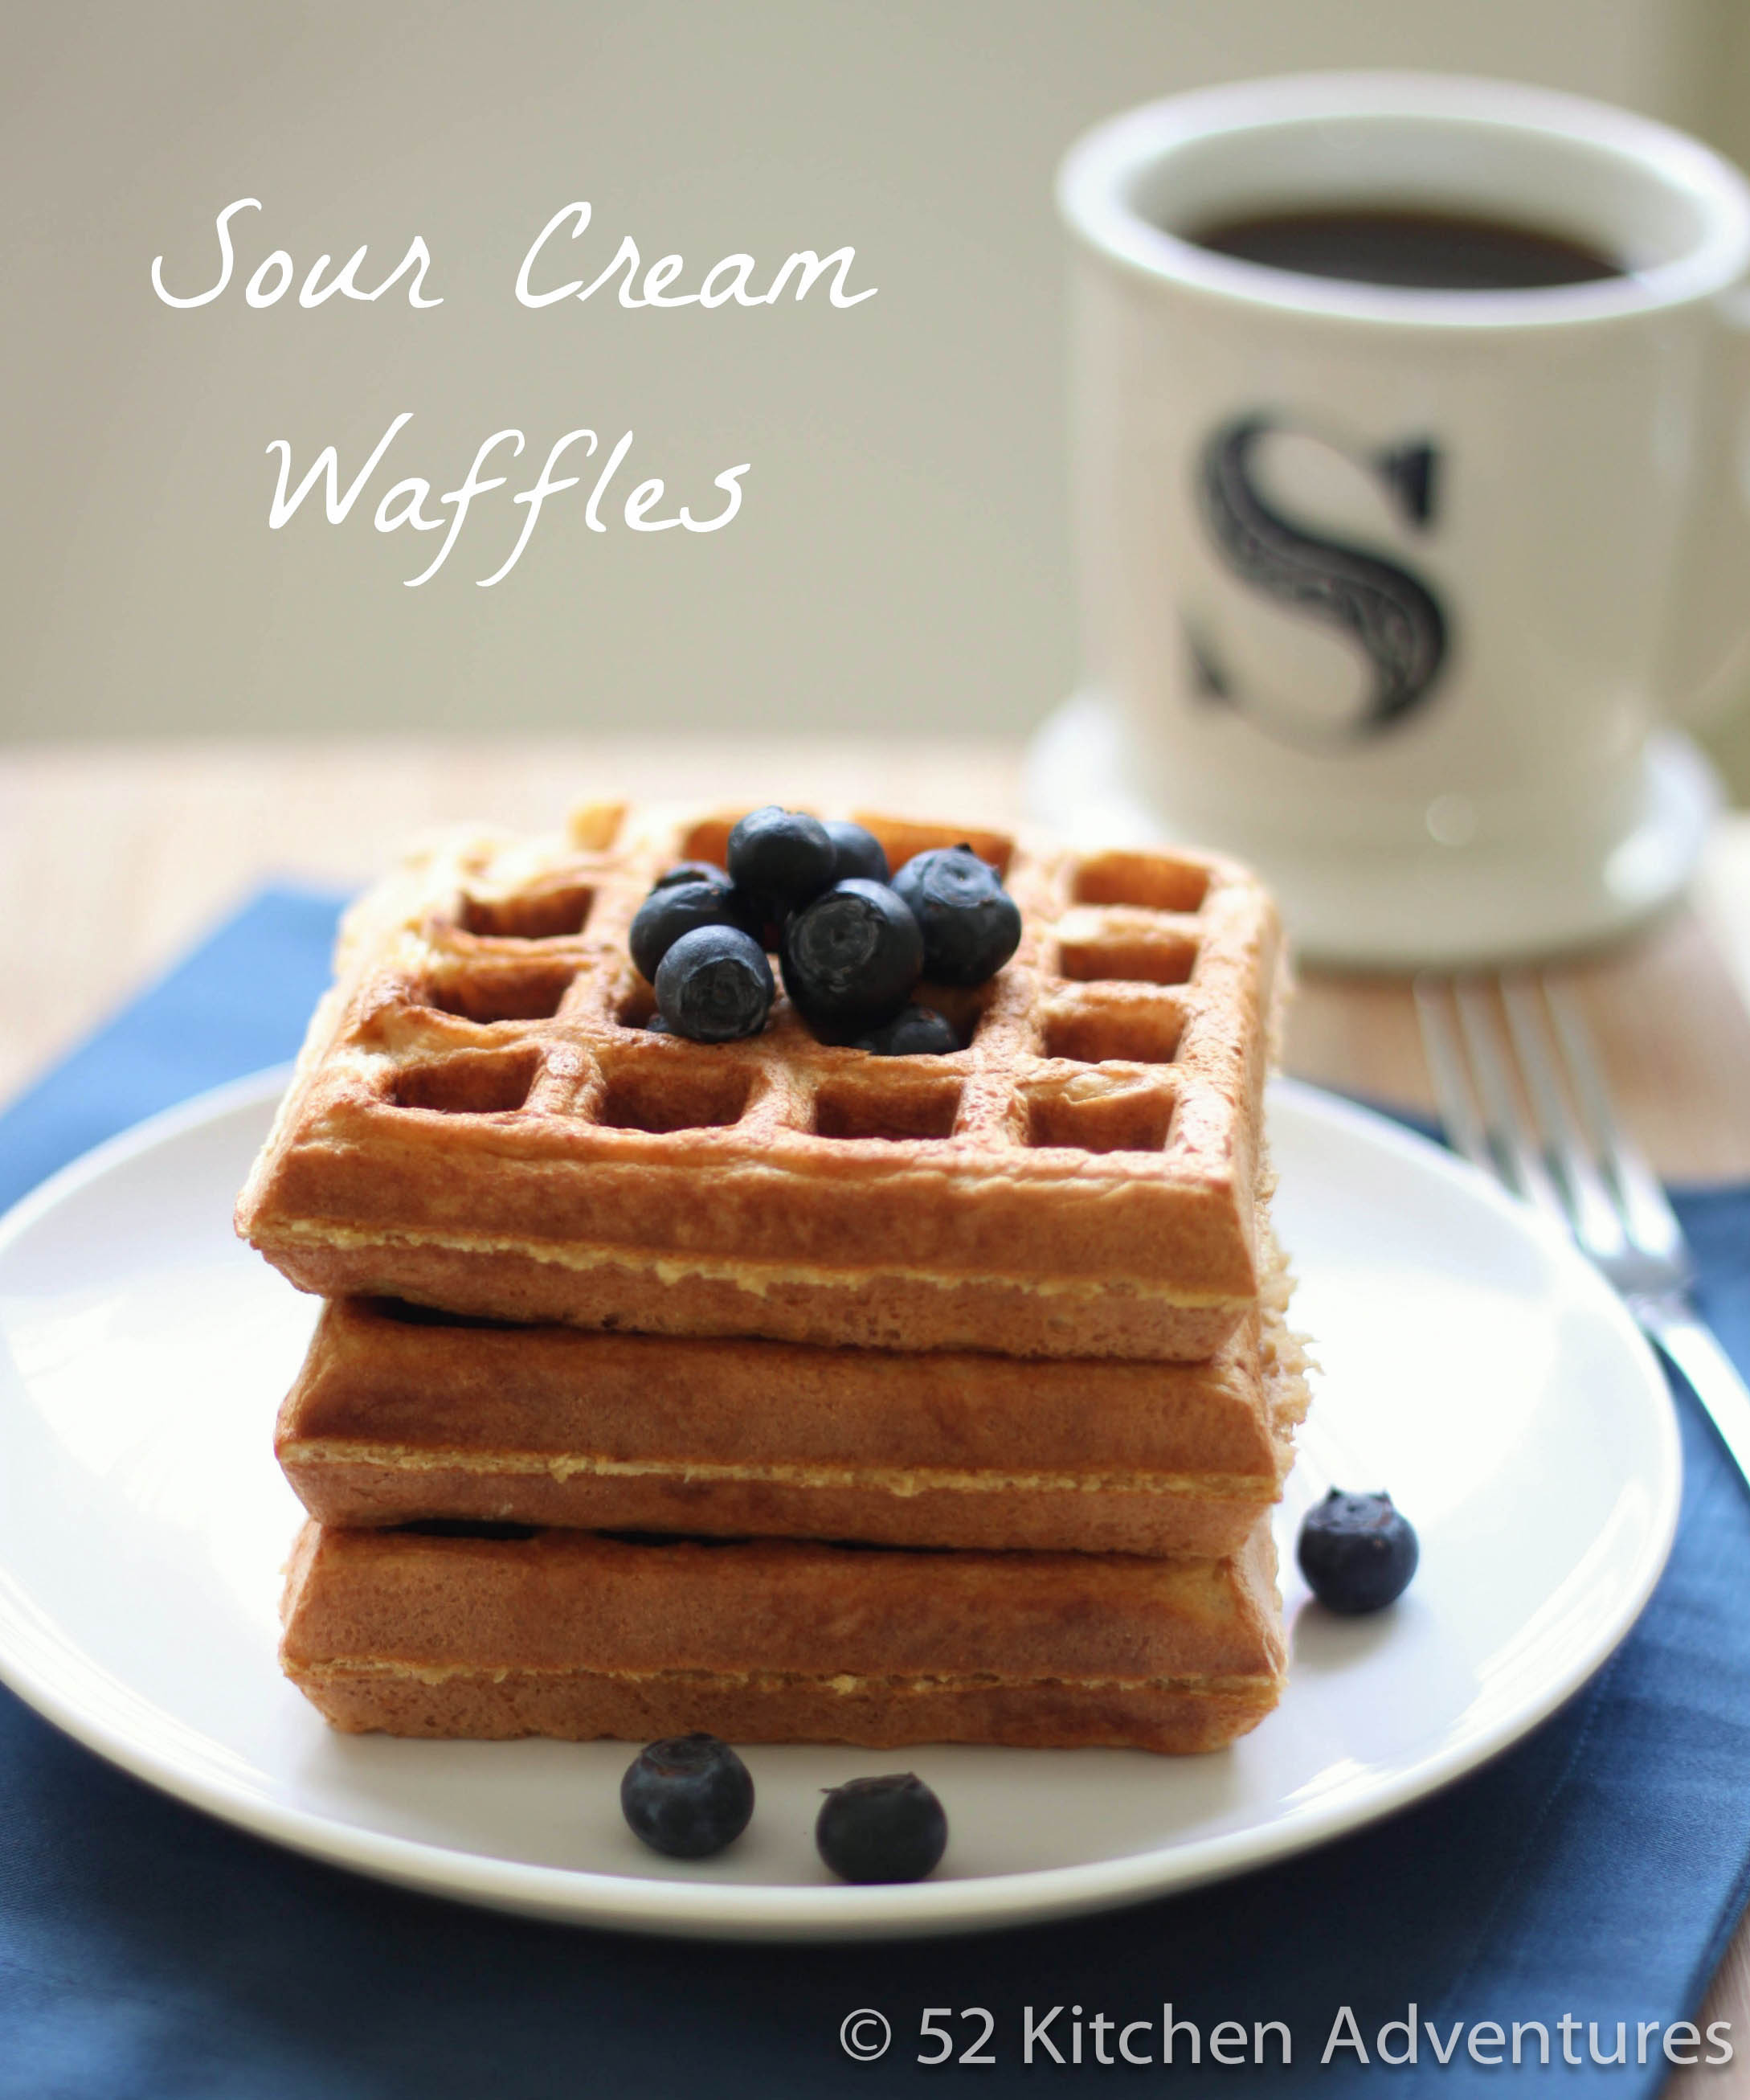 Recipe: Sour cream waffles